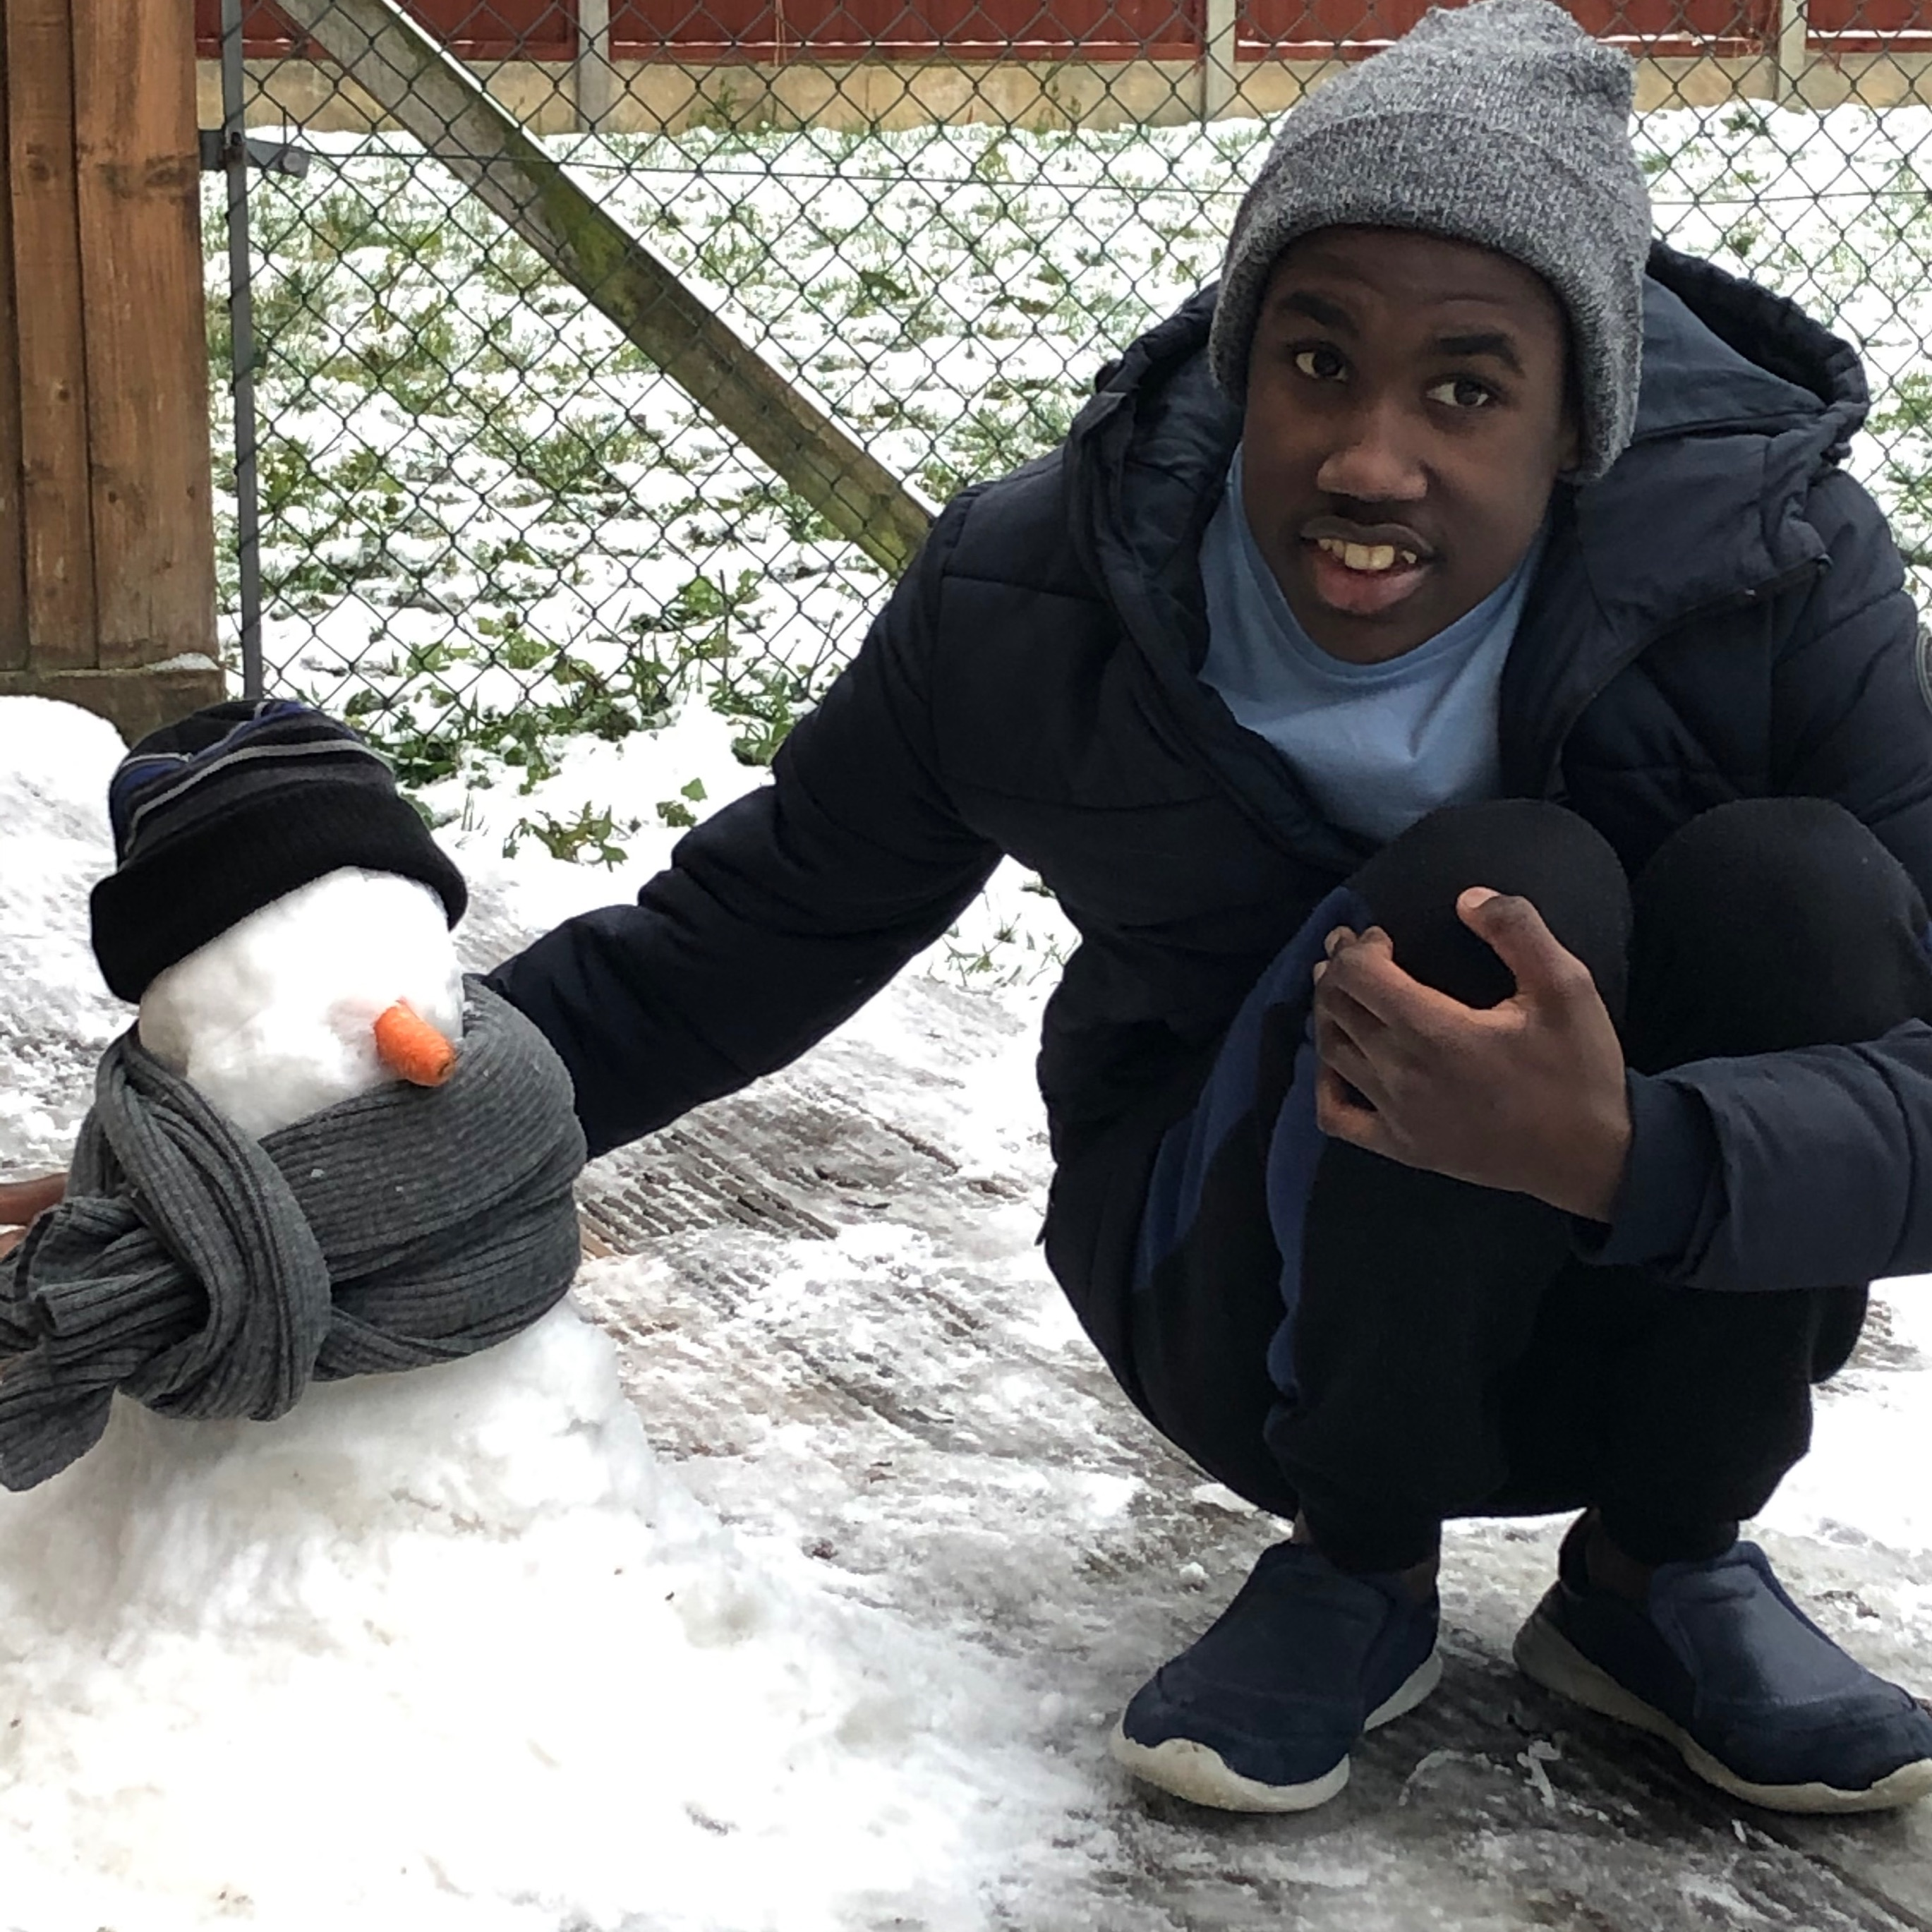 Young man in the snow next to a snow person